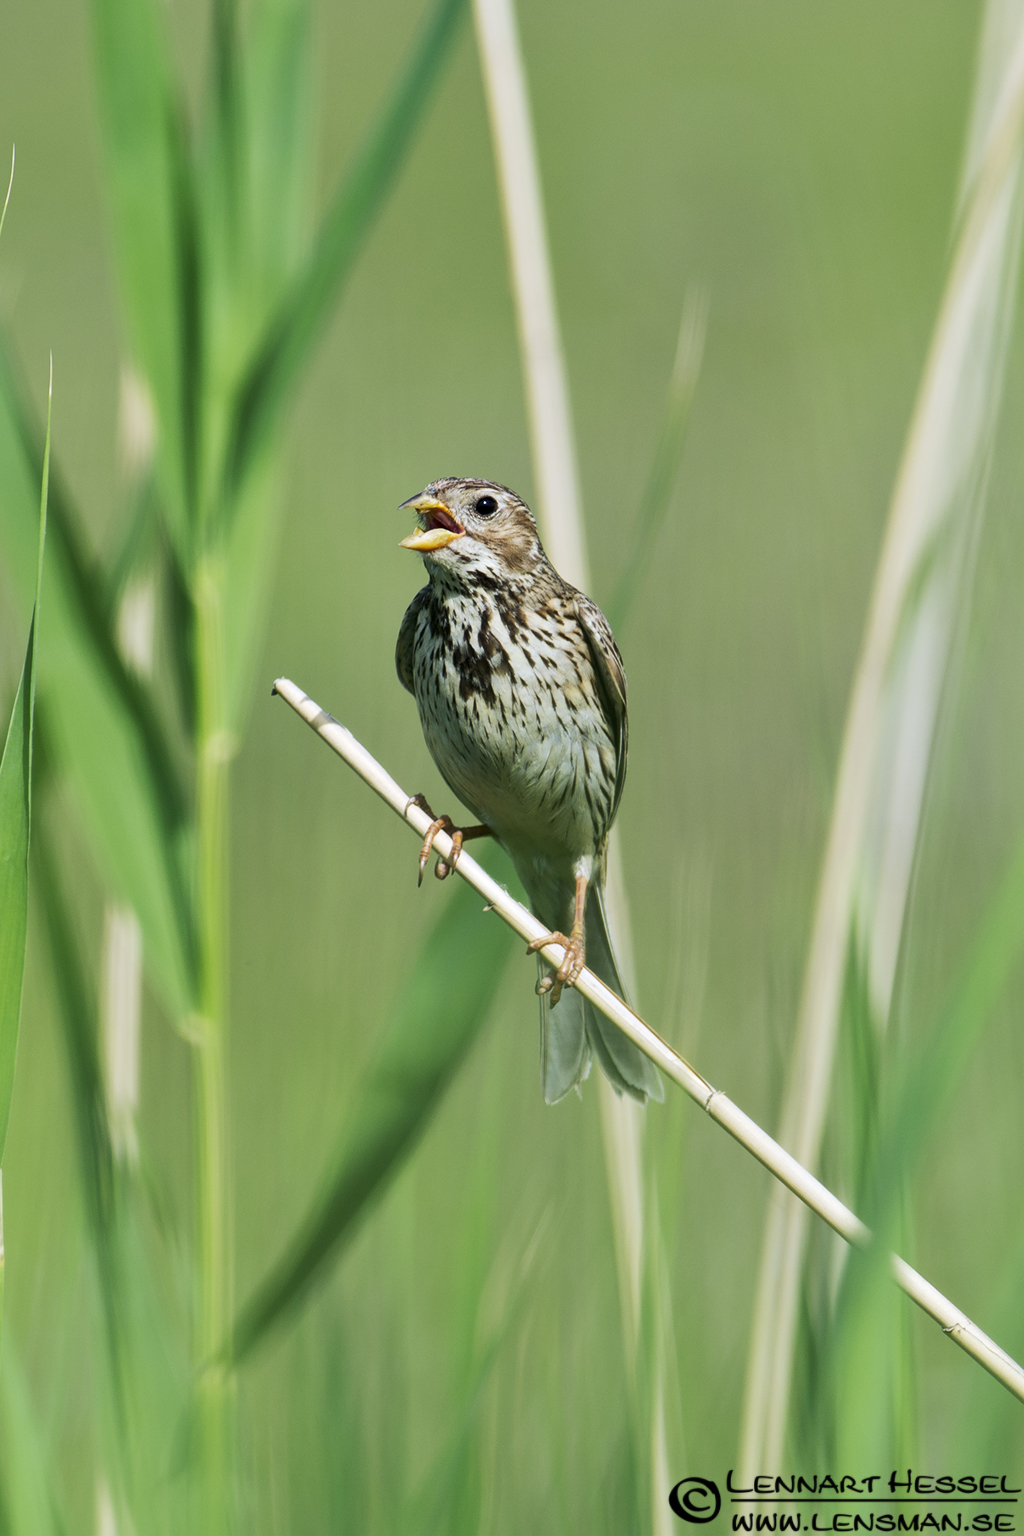 Corn Bunting in Hungary